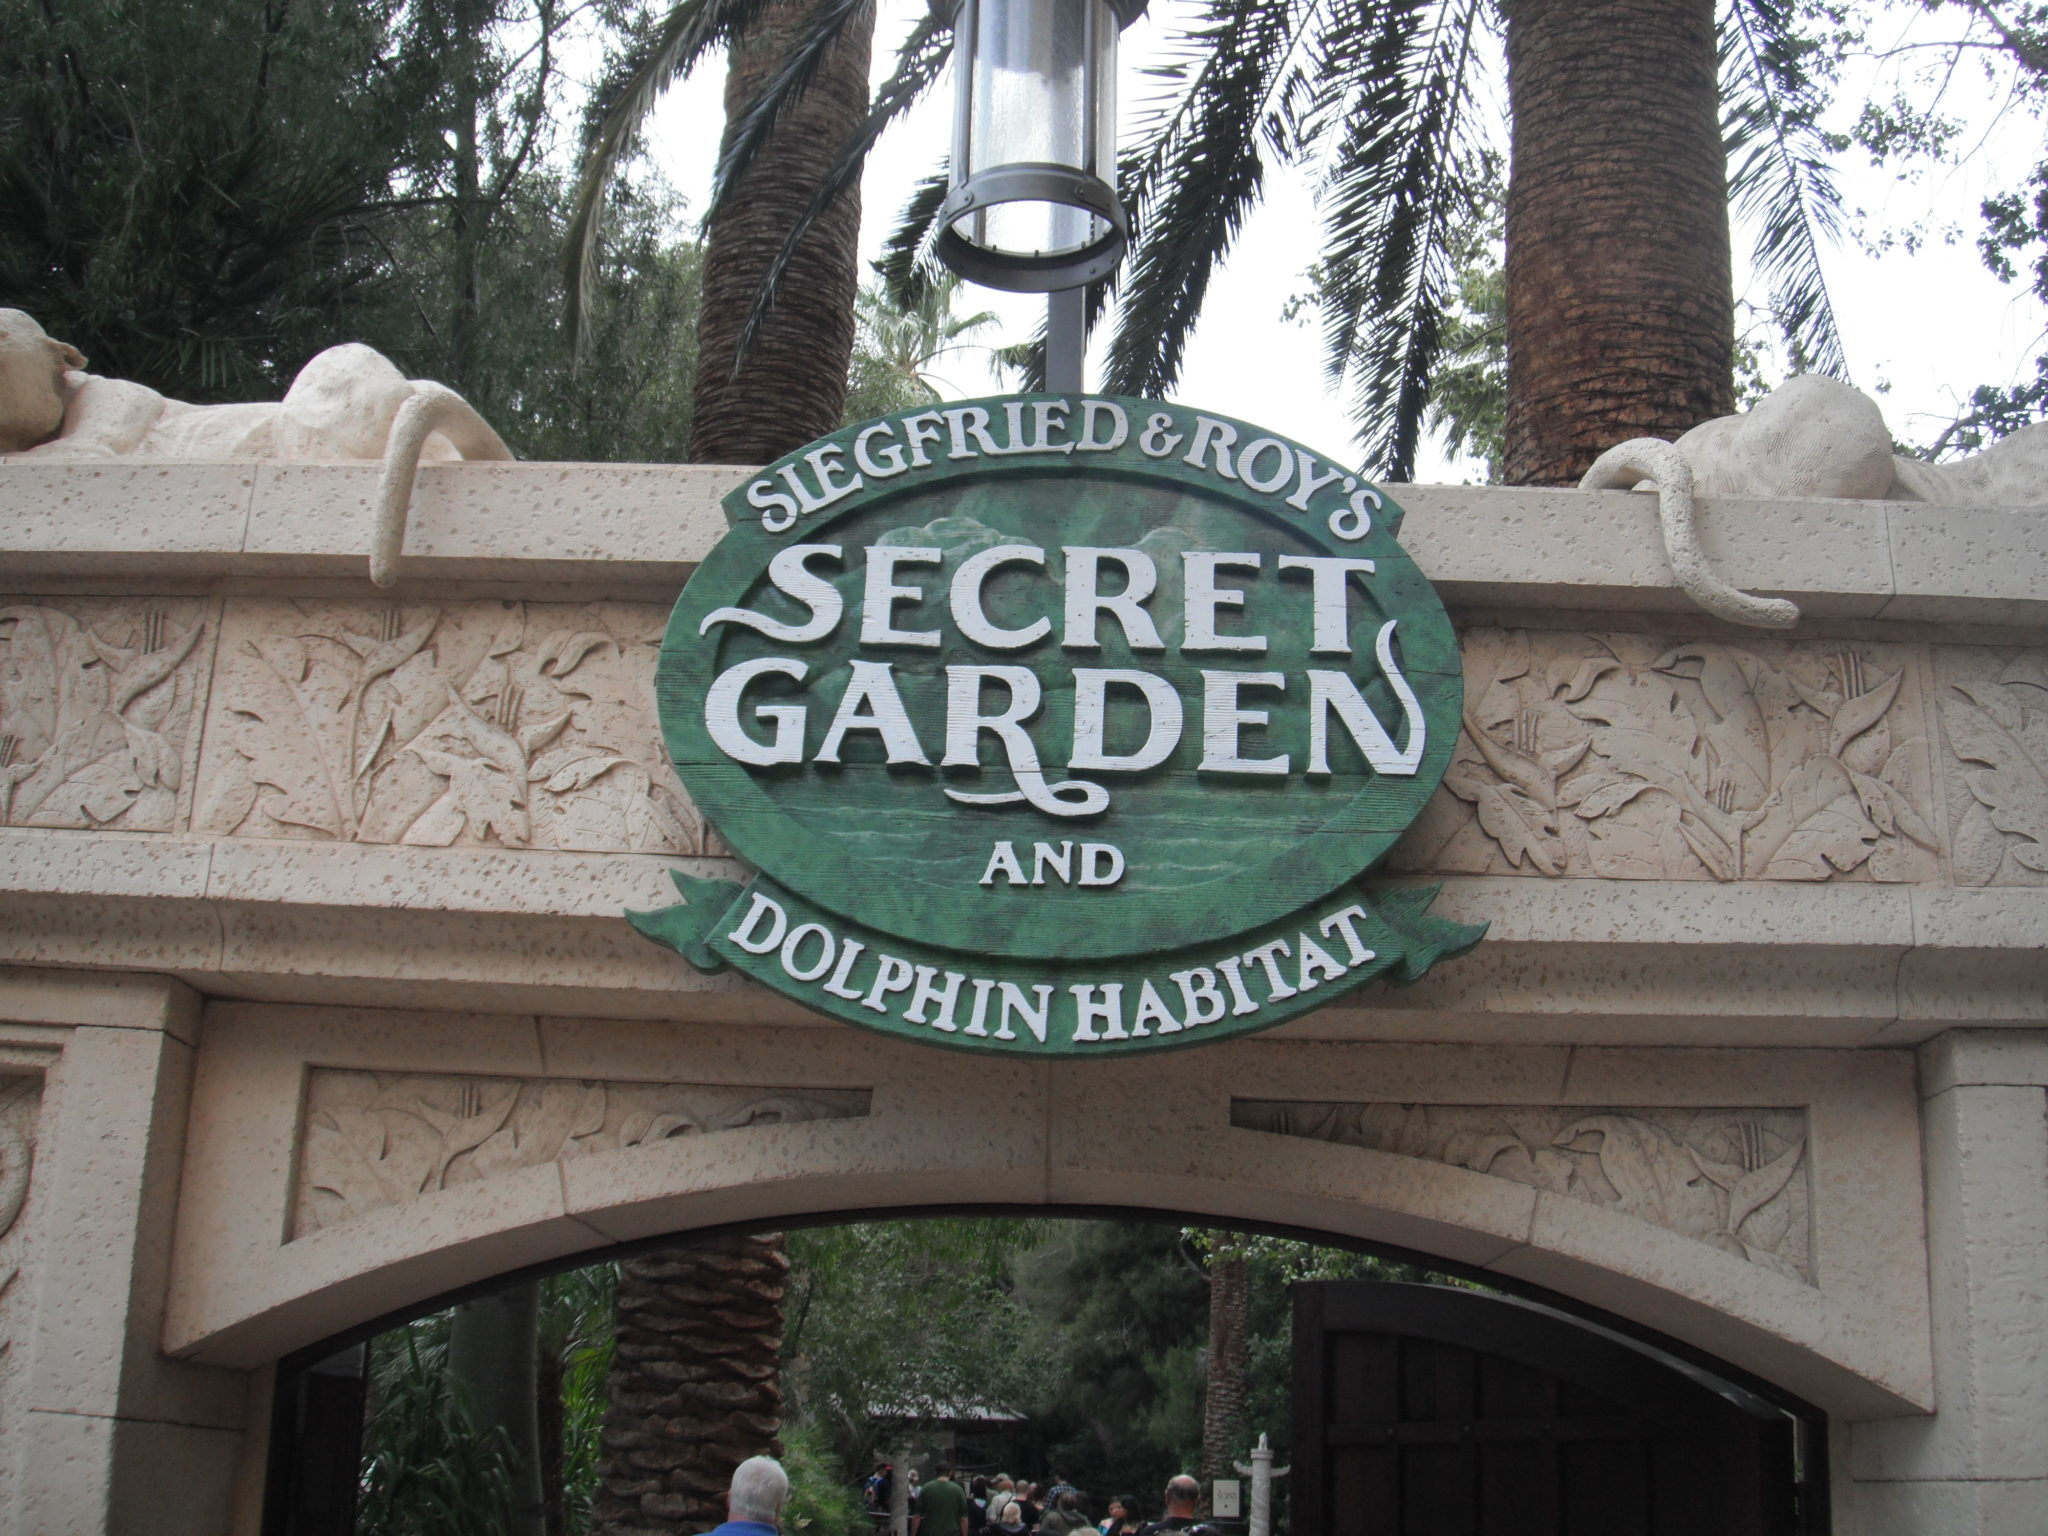 Siegfried And Roys Secret Garden Dolphin Habitat Mirage Vegas Celebrity Radio By Alex Belfield